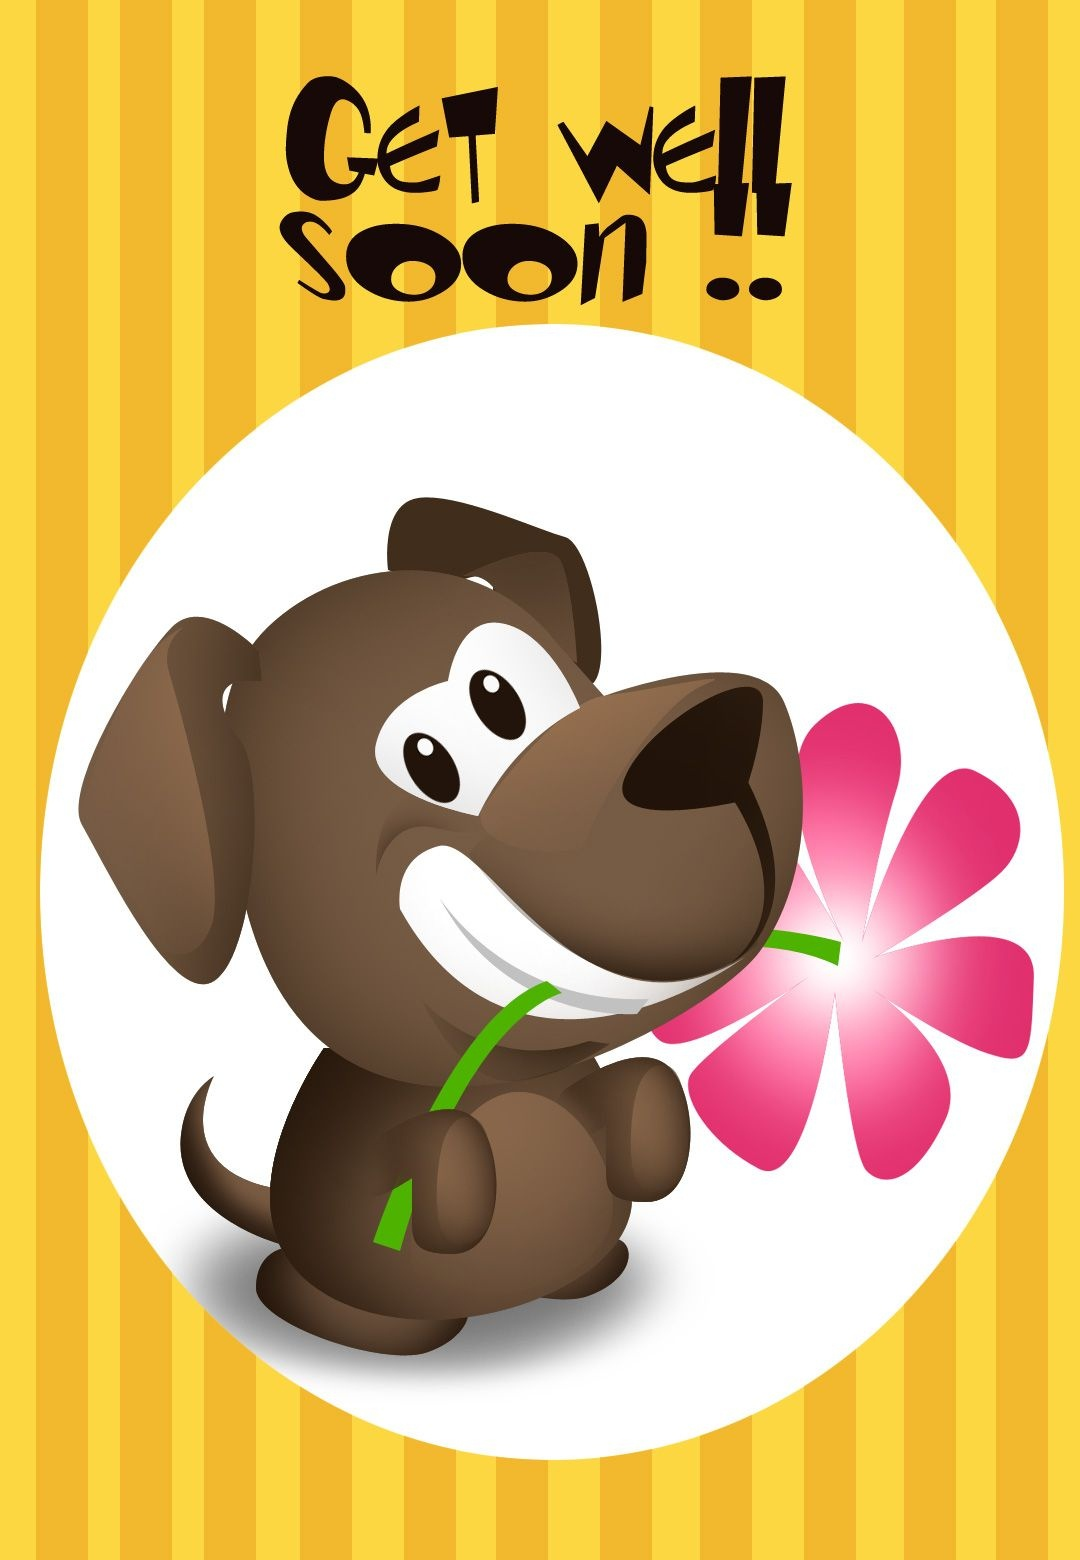 Get Well Soon Free Printable Get Well Soon Puppy Greeting Card - Free Printable Get Well Soon Cards